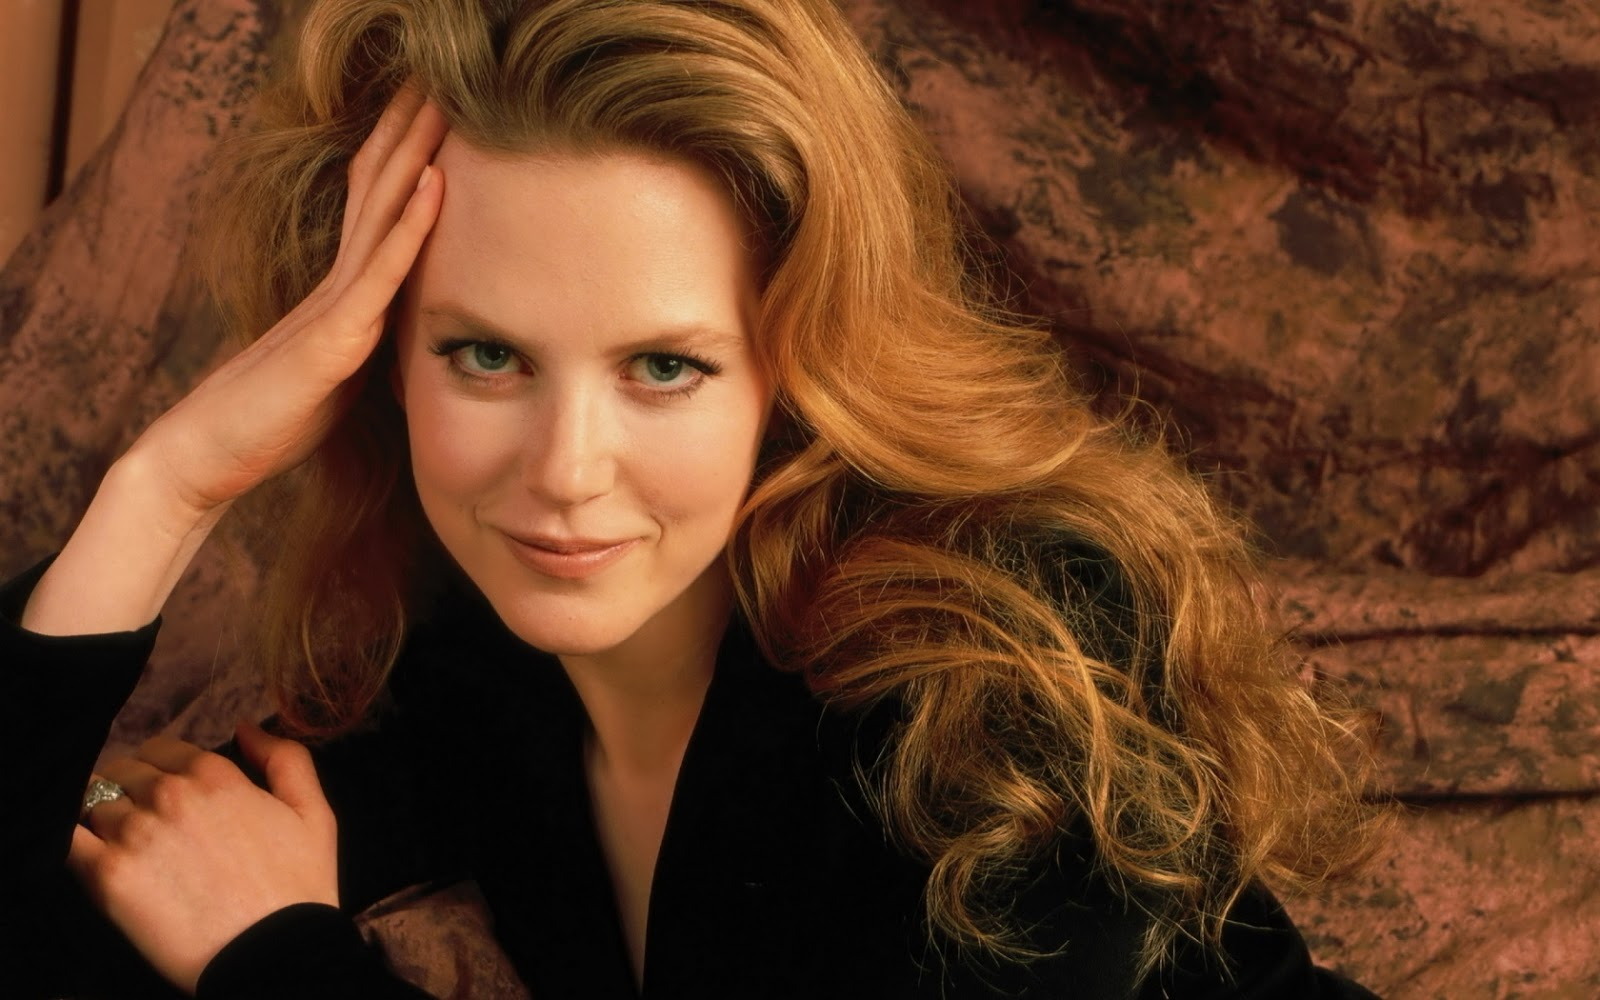 ZEC97 HDQ Nicole Kidman Wallpapers, Nicole Kidman Wallpapers for ...